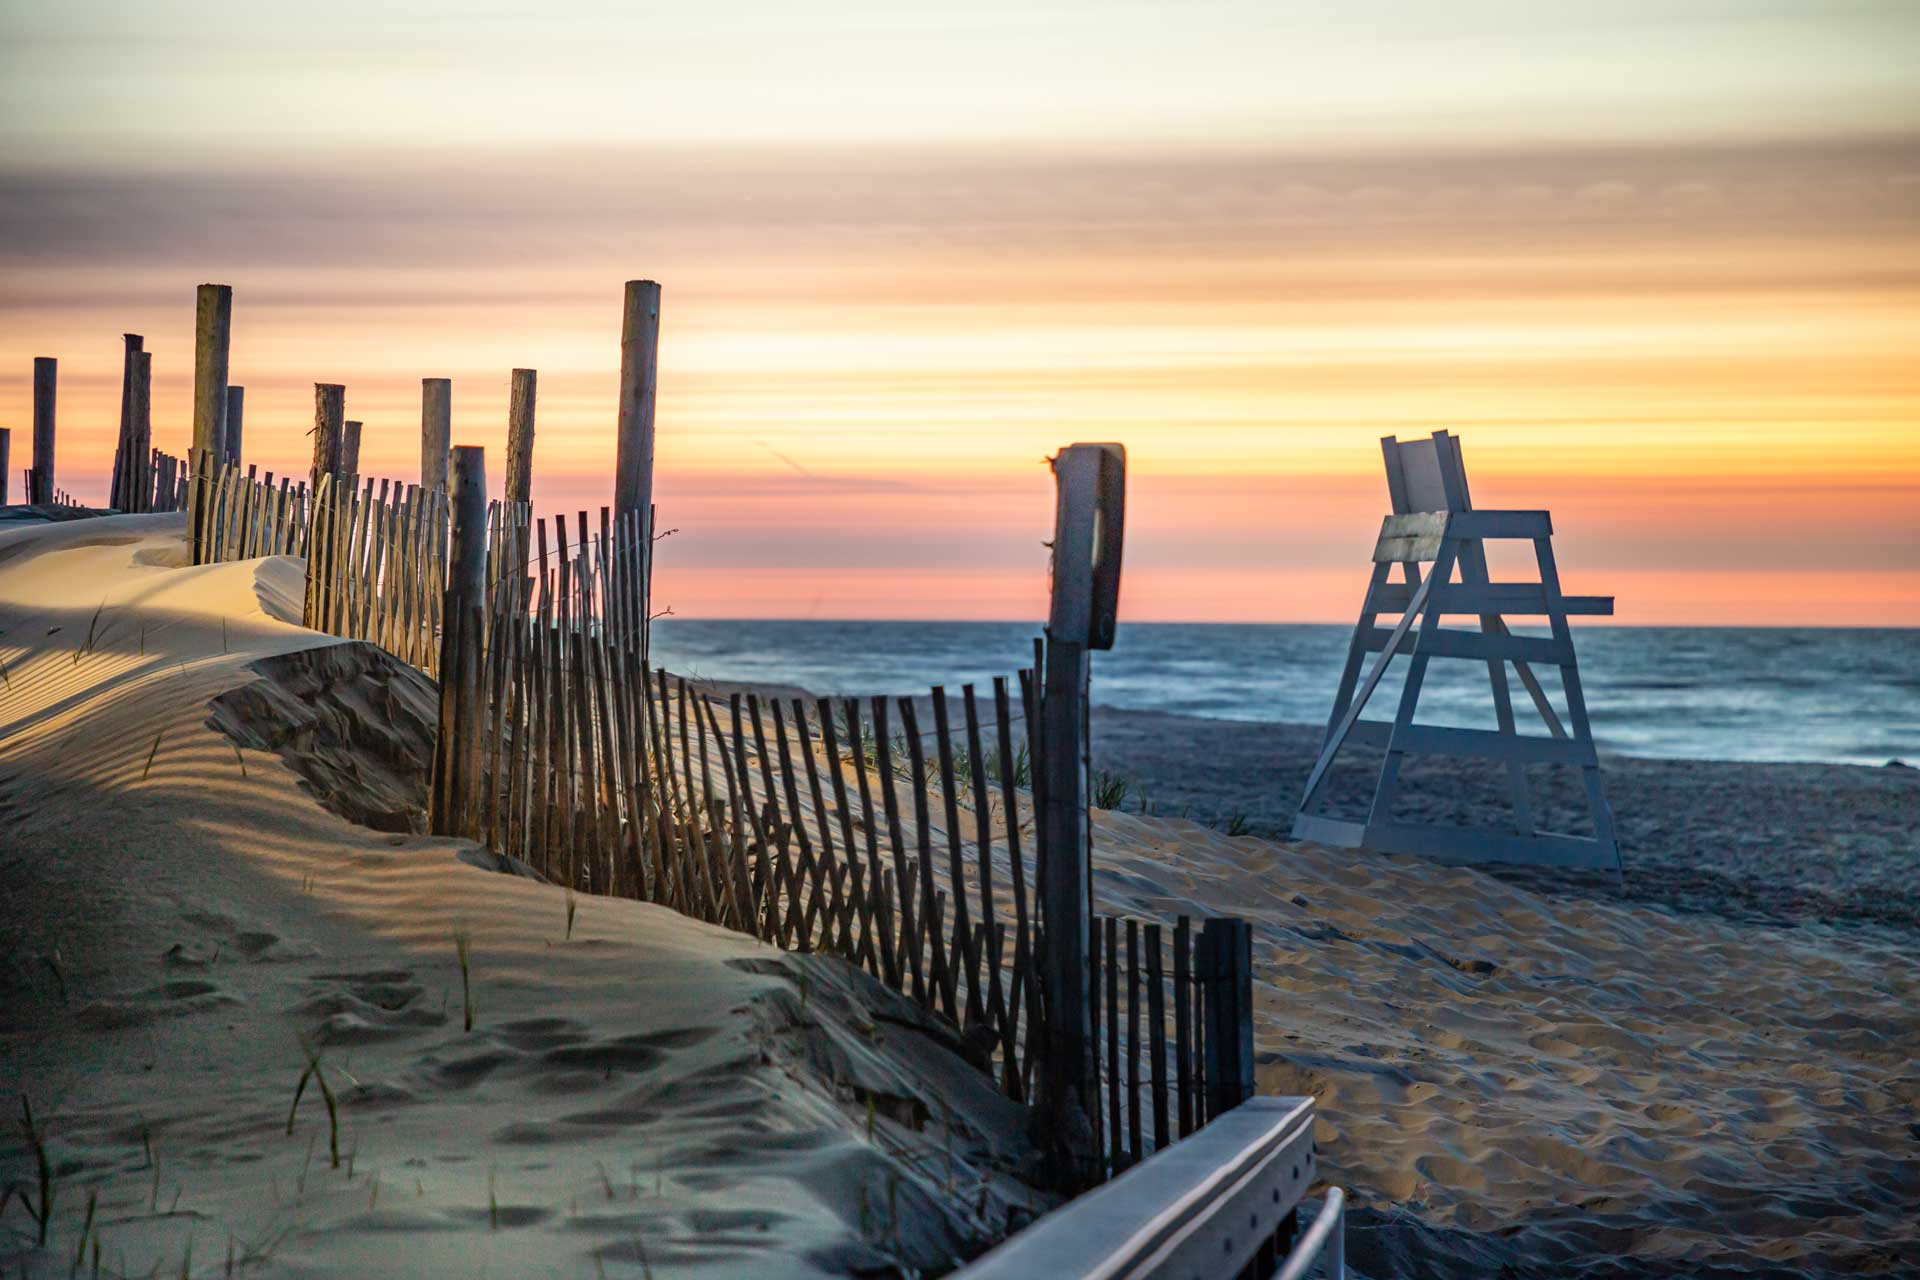 Monmouth County, NJ is home to the fabled beaches and boardwalks of the Jersey Shore